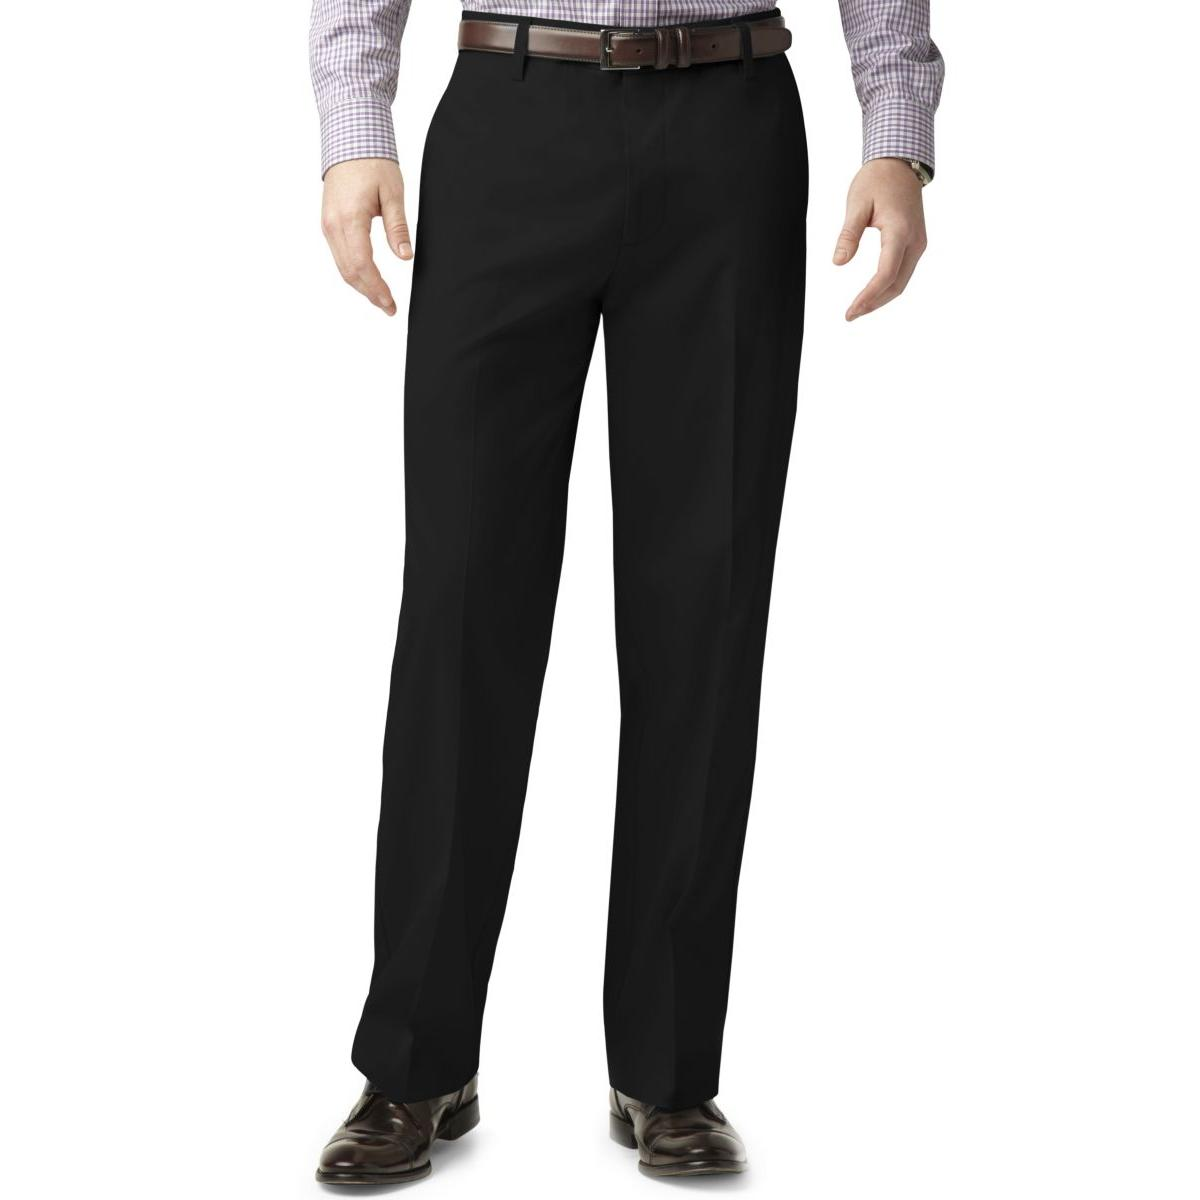 Dockers Mens Classic Fit Flat Front Casual Pants by Dockers